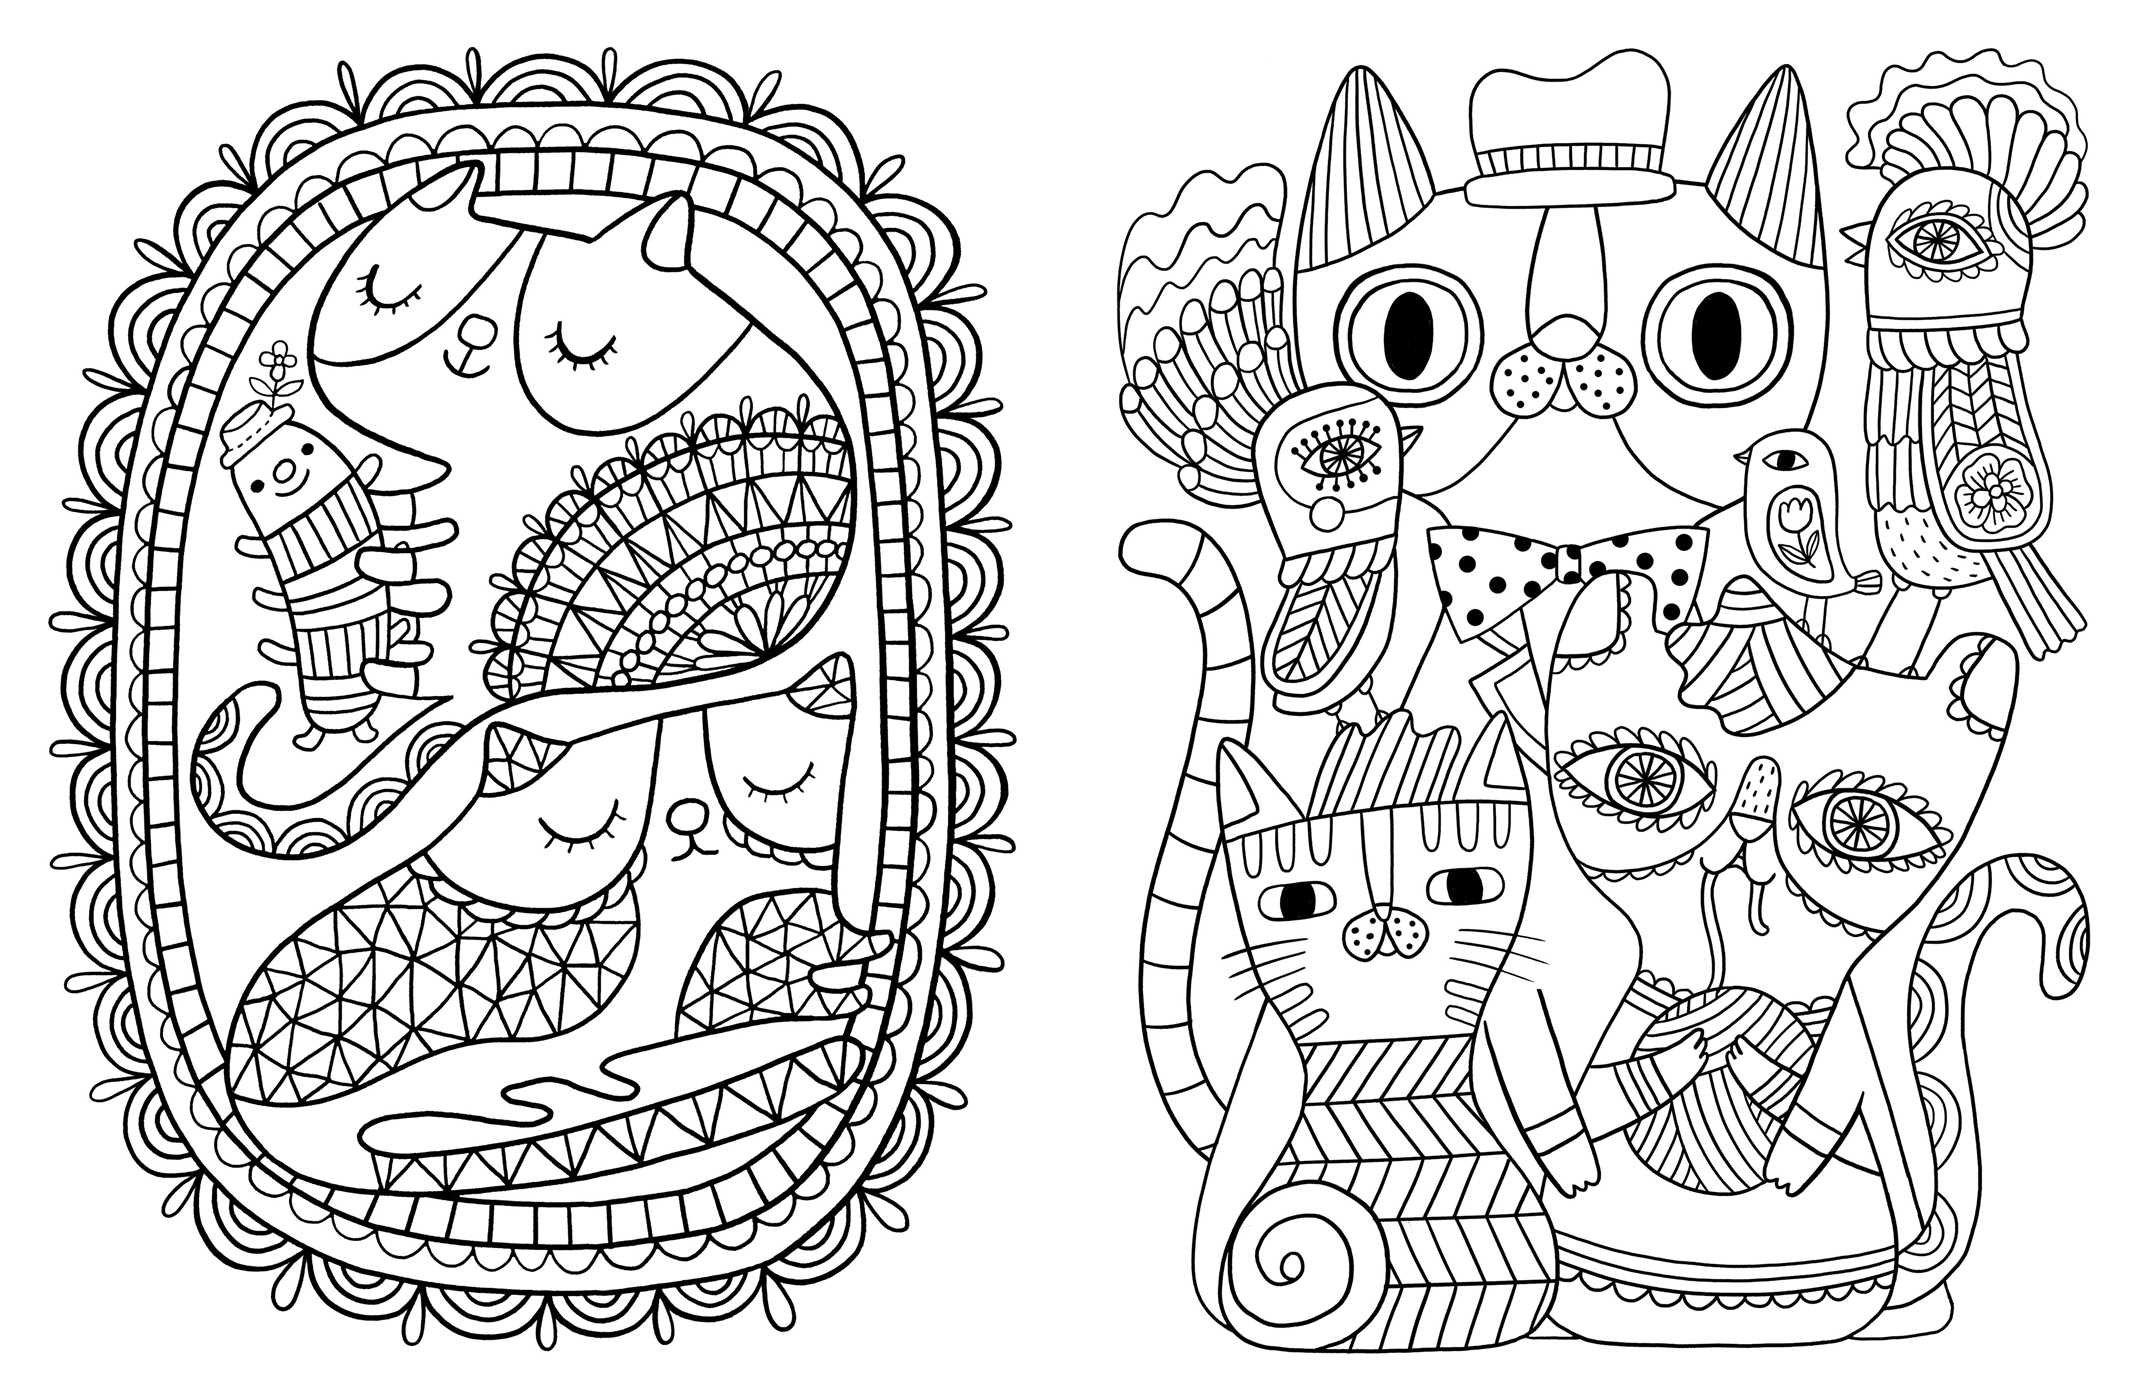 Whimsical designs coloring book - Amazon Com Posh Adult Coloring Book Cats Kittens For Comfort Creativity Posh Coloring Books 9781449478735 Flora Chang Books